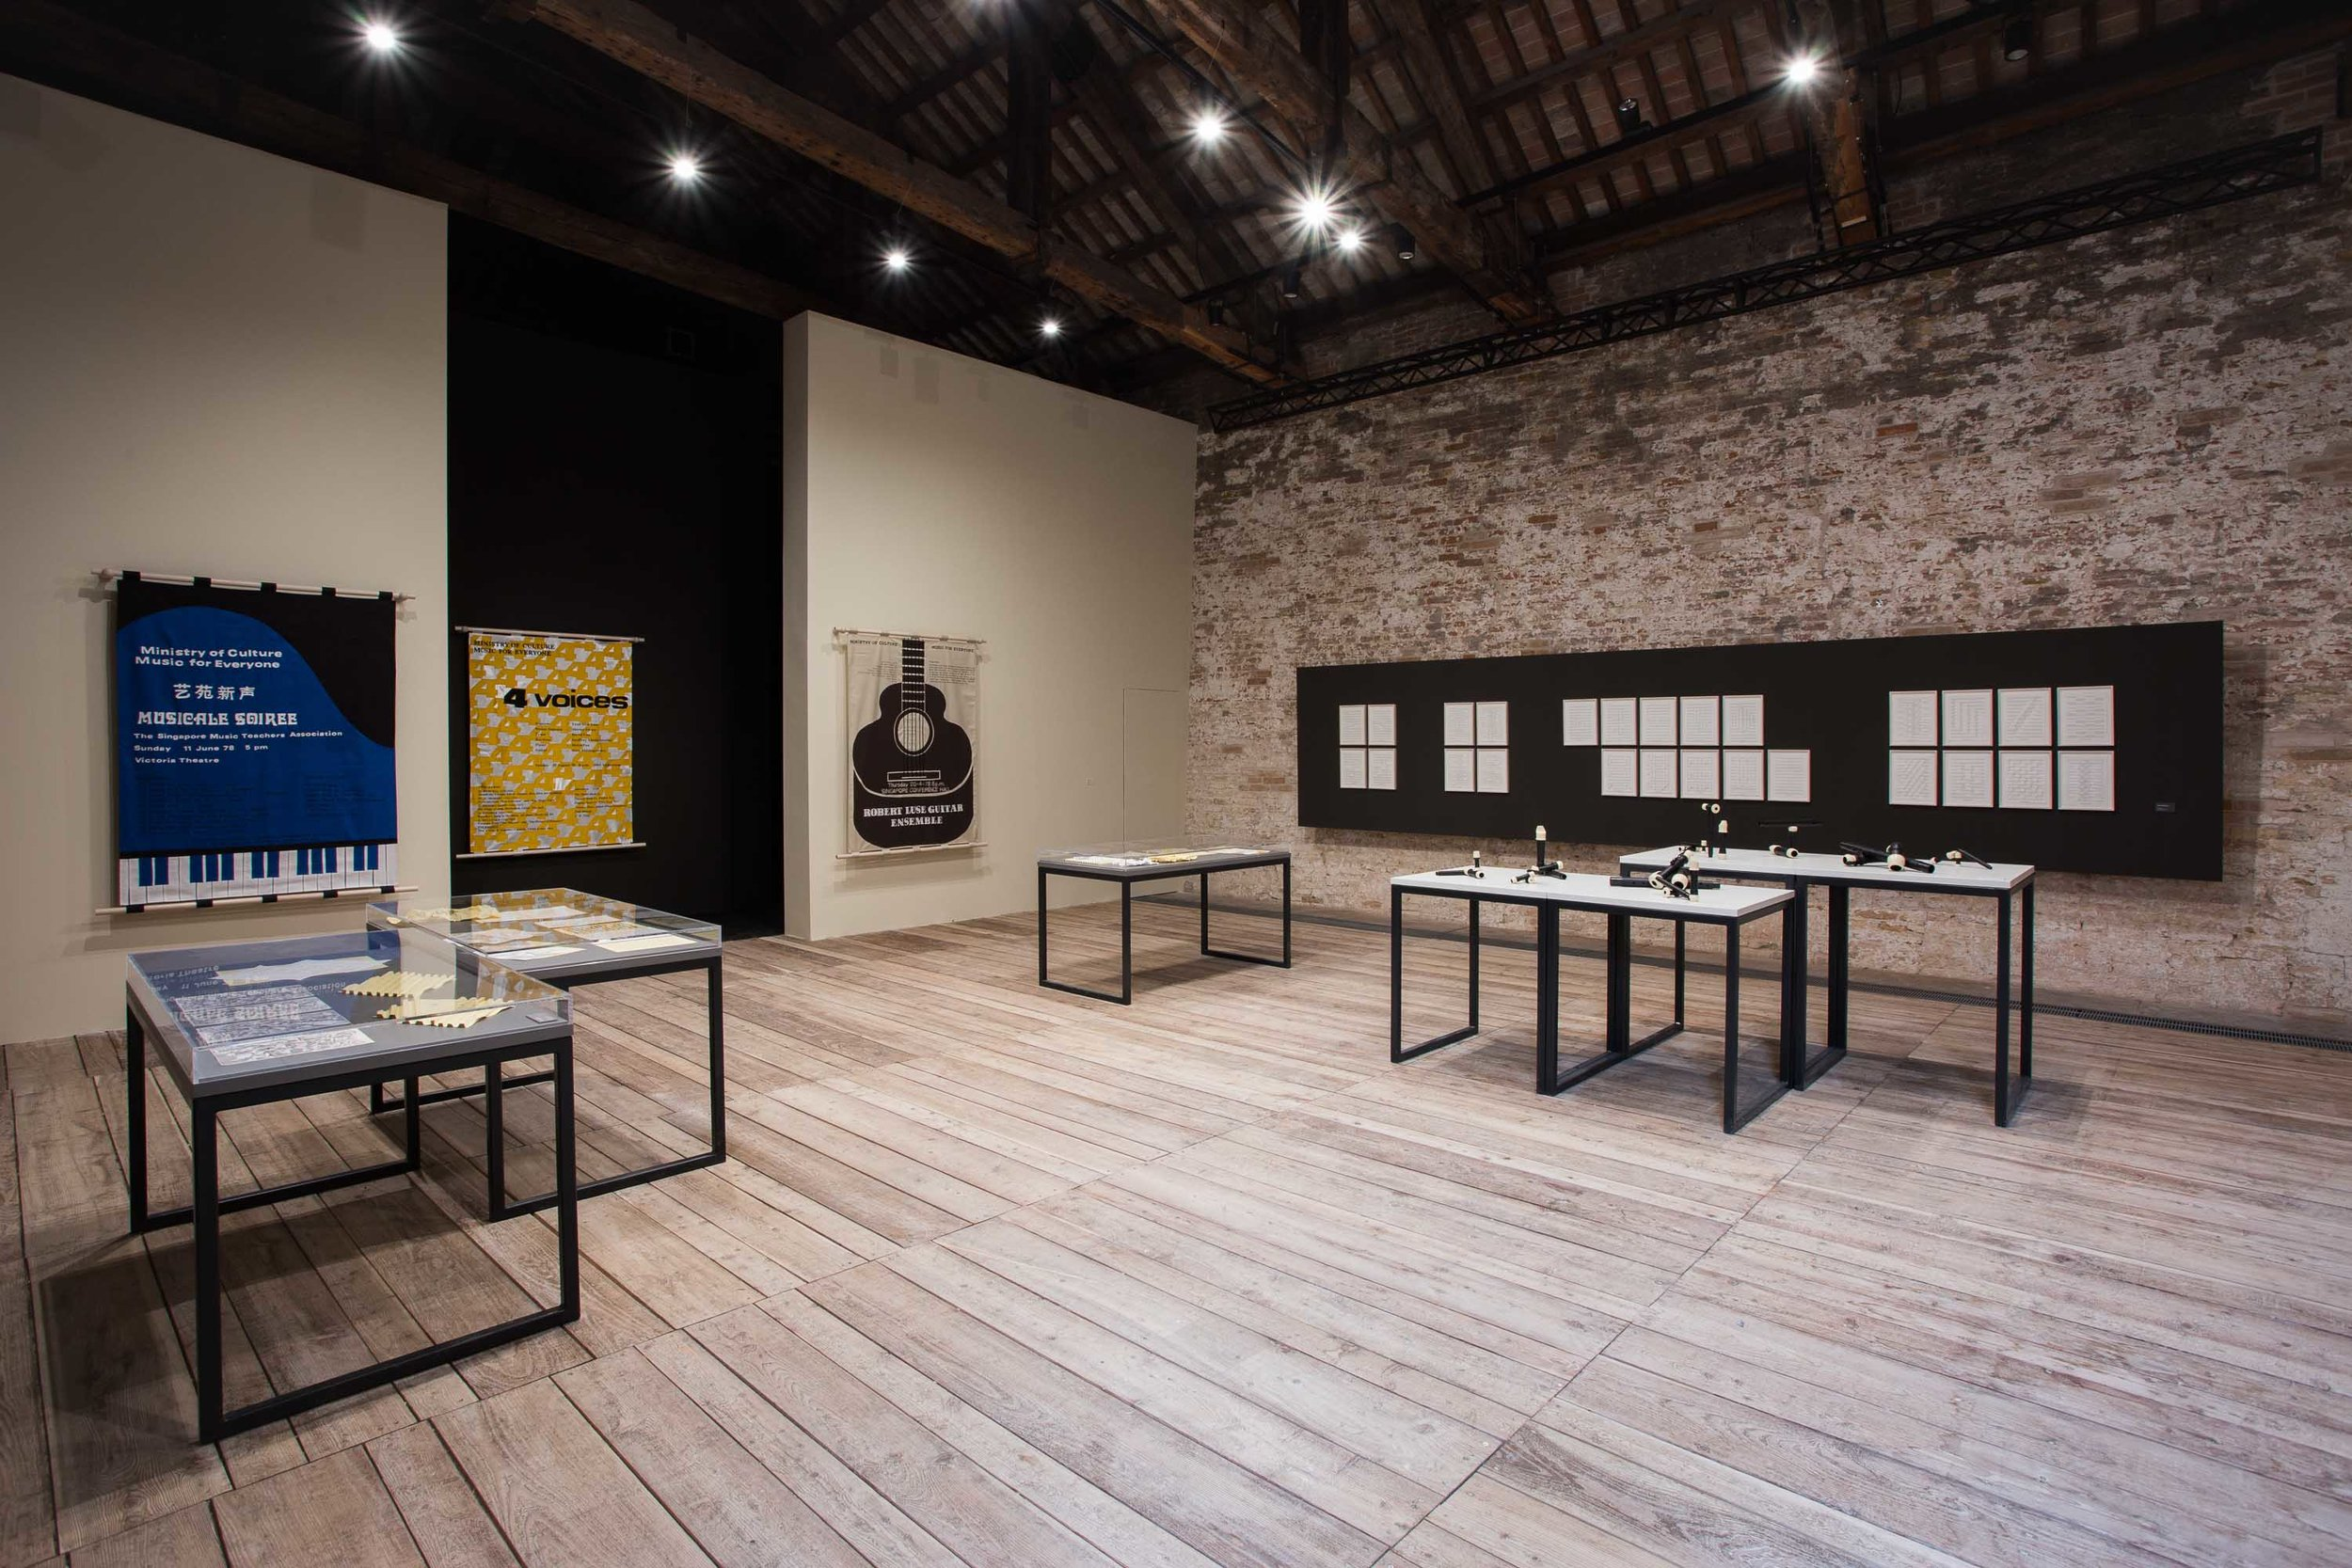 Singapore Pavilion at the Venice Biennale Arte 2019. 'Music For Everyone/ Variations on a Theme' by artist Song-Ming Ang and curator Michelle Ho. Photo by Olivia Kwok, courtesy of the artist.